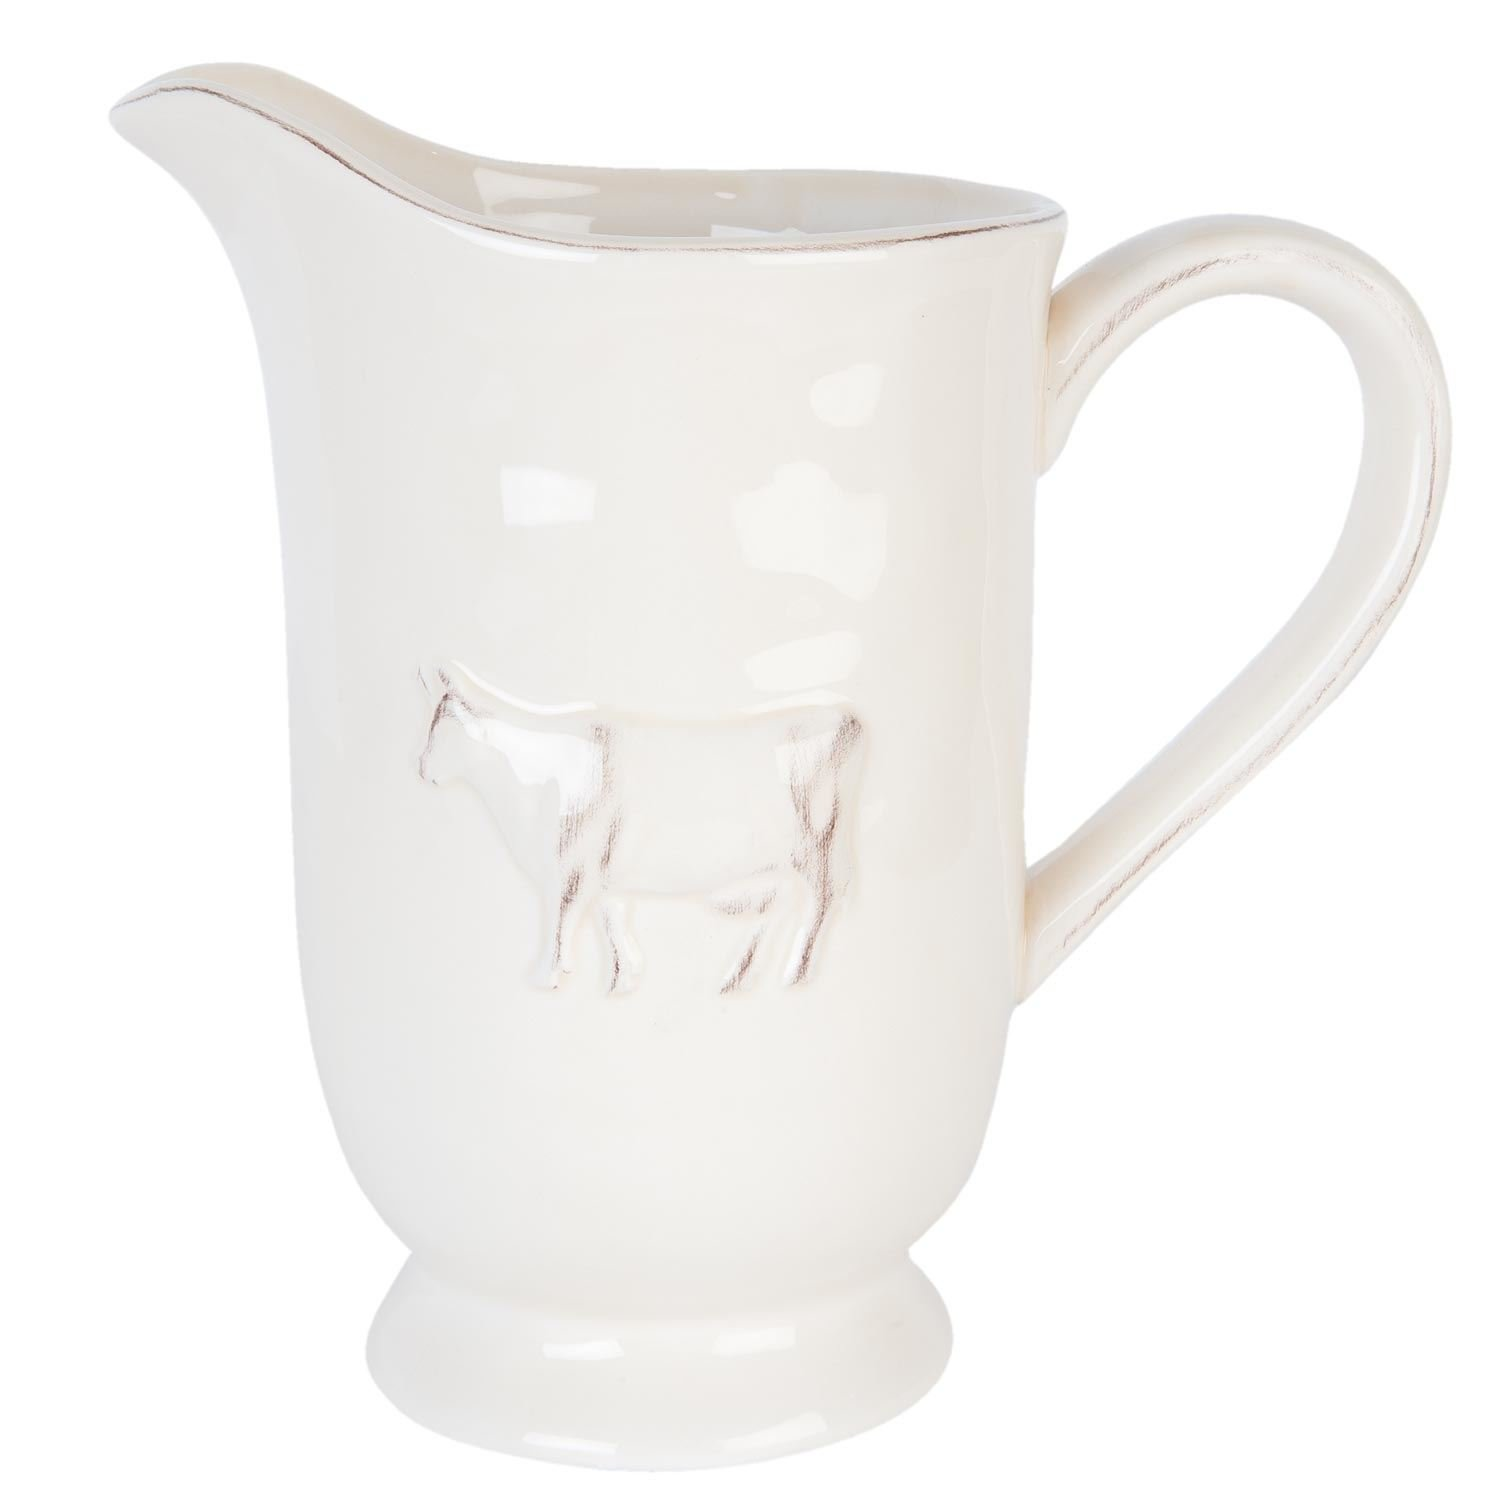 LUXURY NORDIC COW LARGE WATER PITCHER MILK JUG GLAZE CREAM LATTE Kitchen Unique